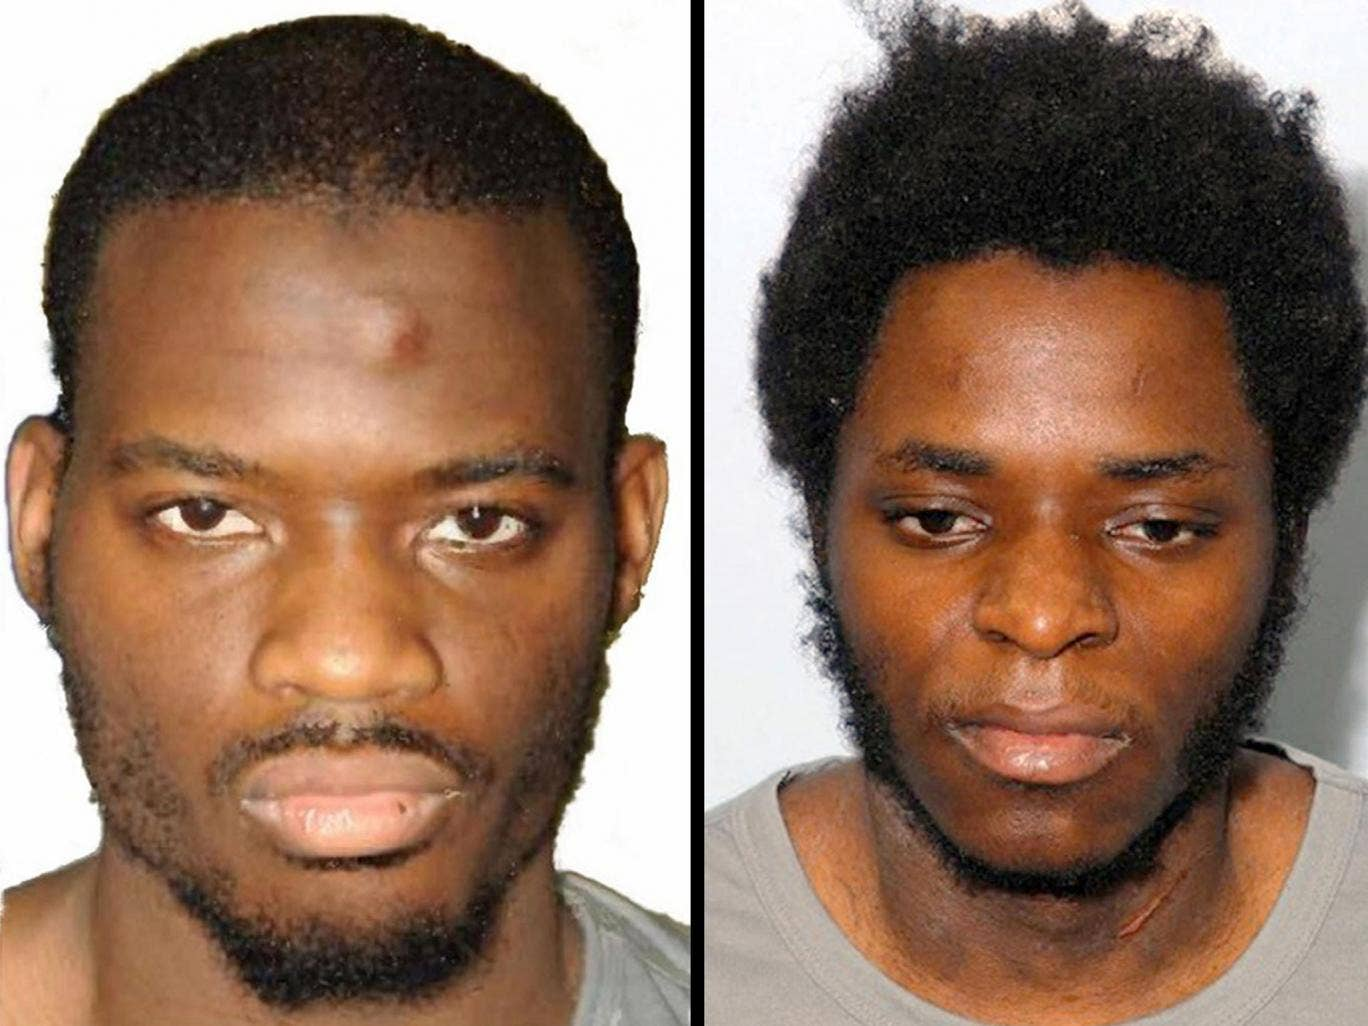 Michael Adebolajo (left) and Michael Adebowale were found guilty of the murder of soldier Lee Rigby